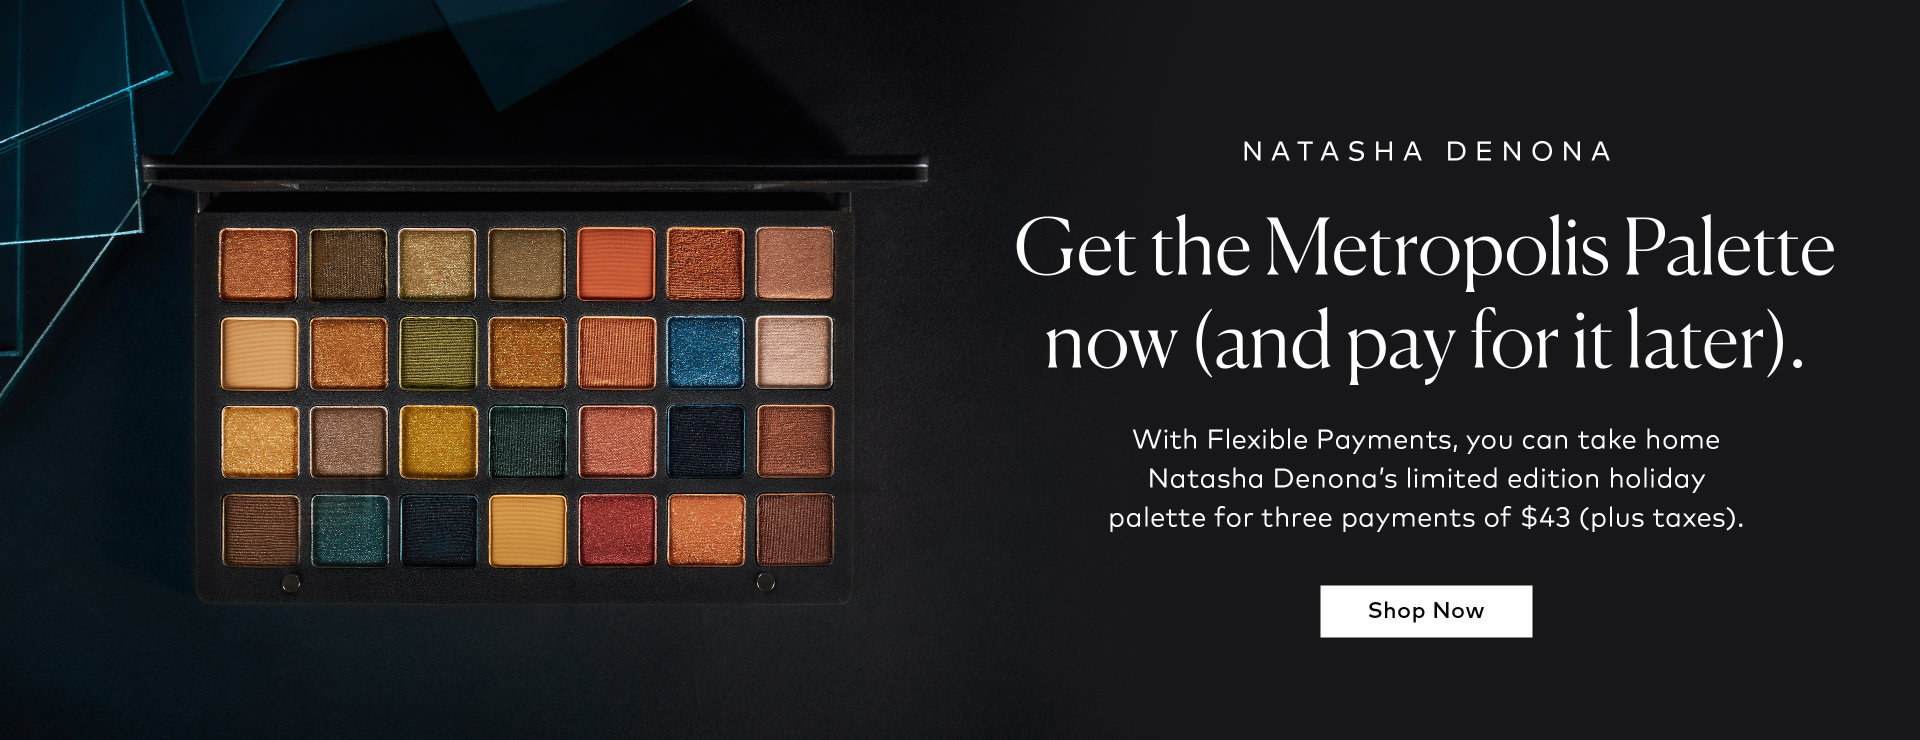 Shop Natasha Denona's Metropolis Palette with 3 interest-free payments on Beautylish.com